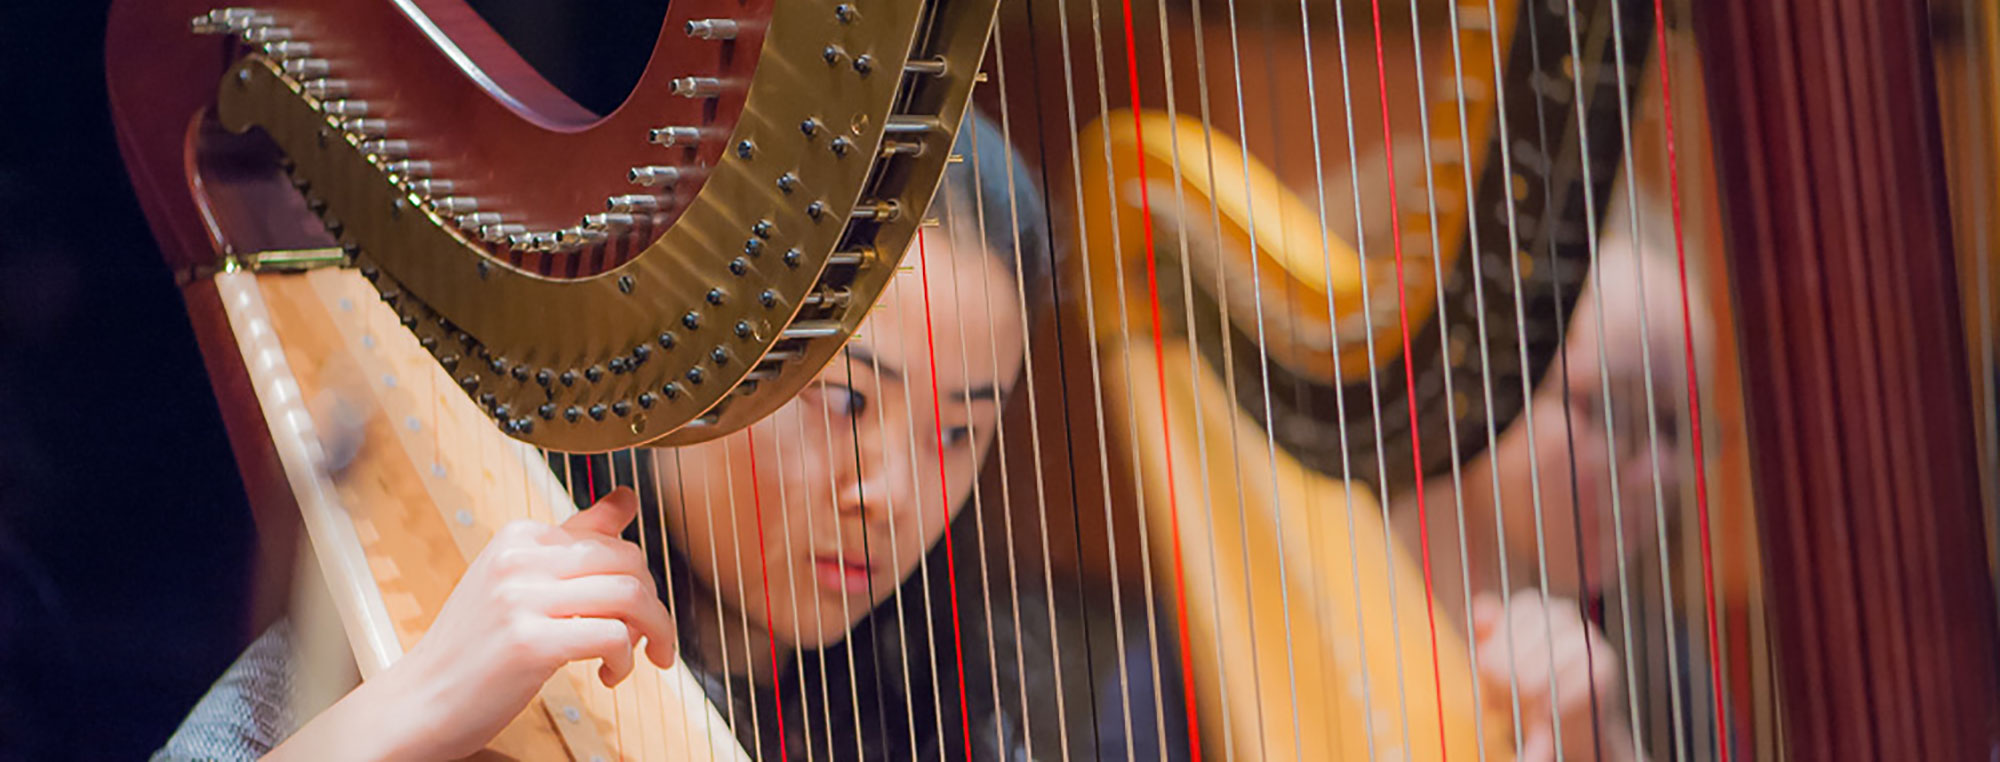 Young Girl Playing Harp